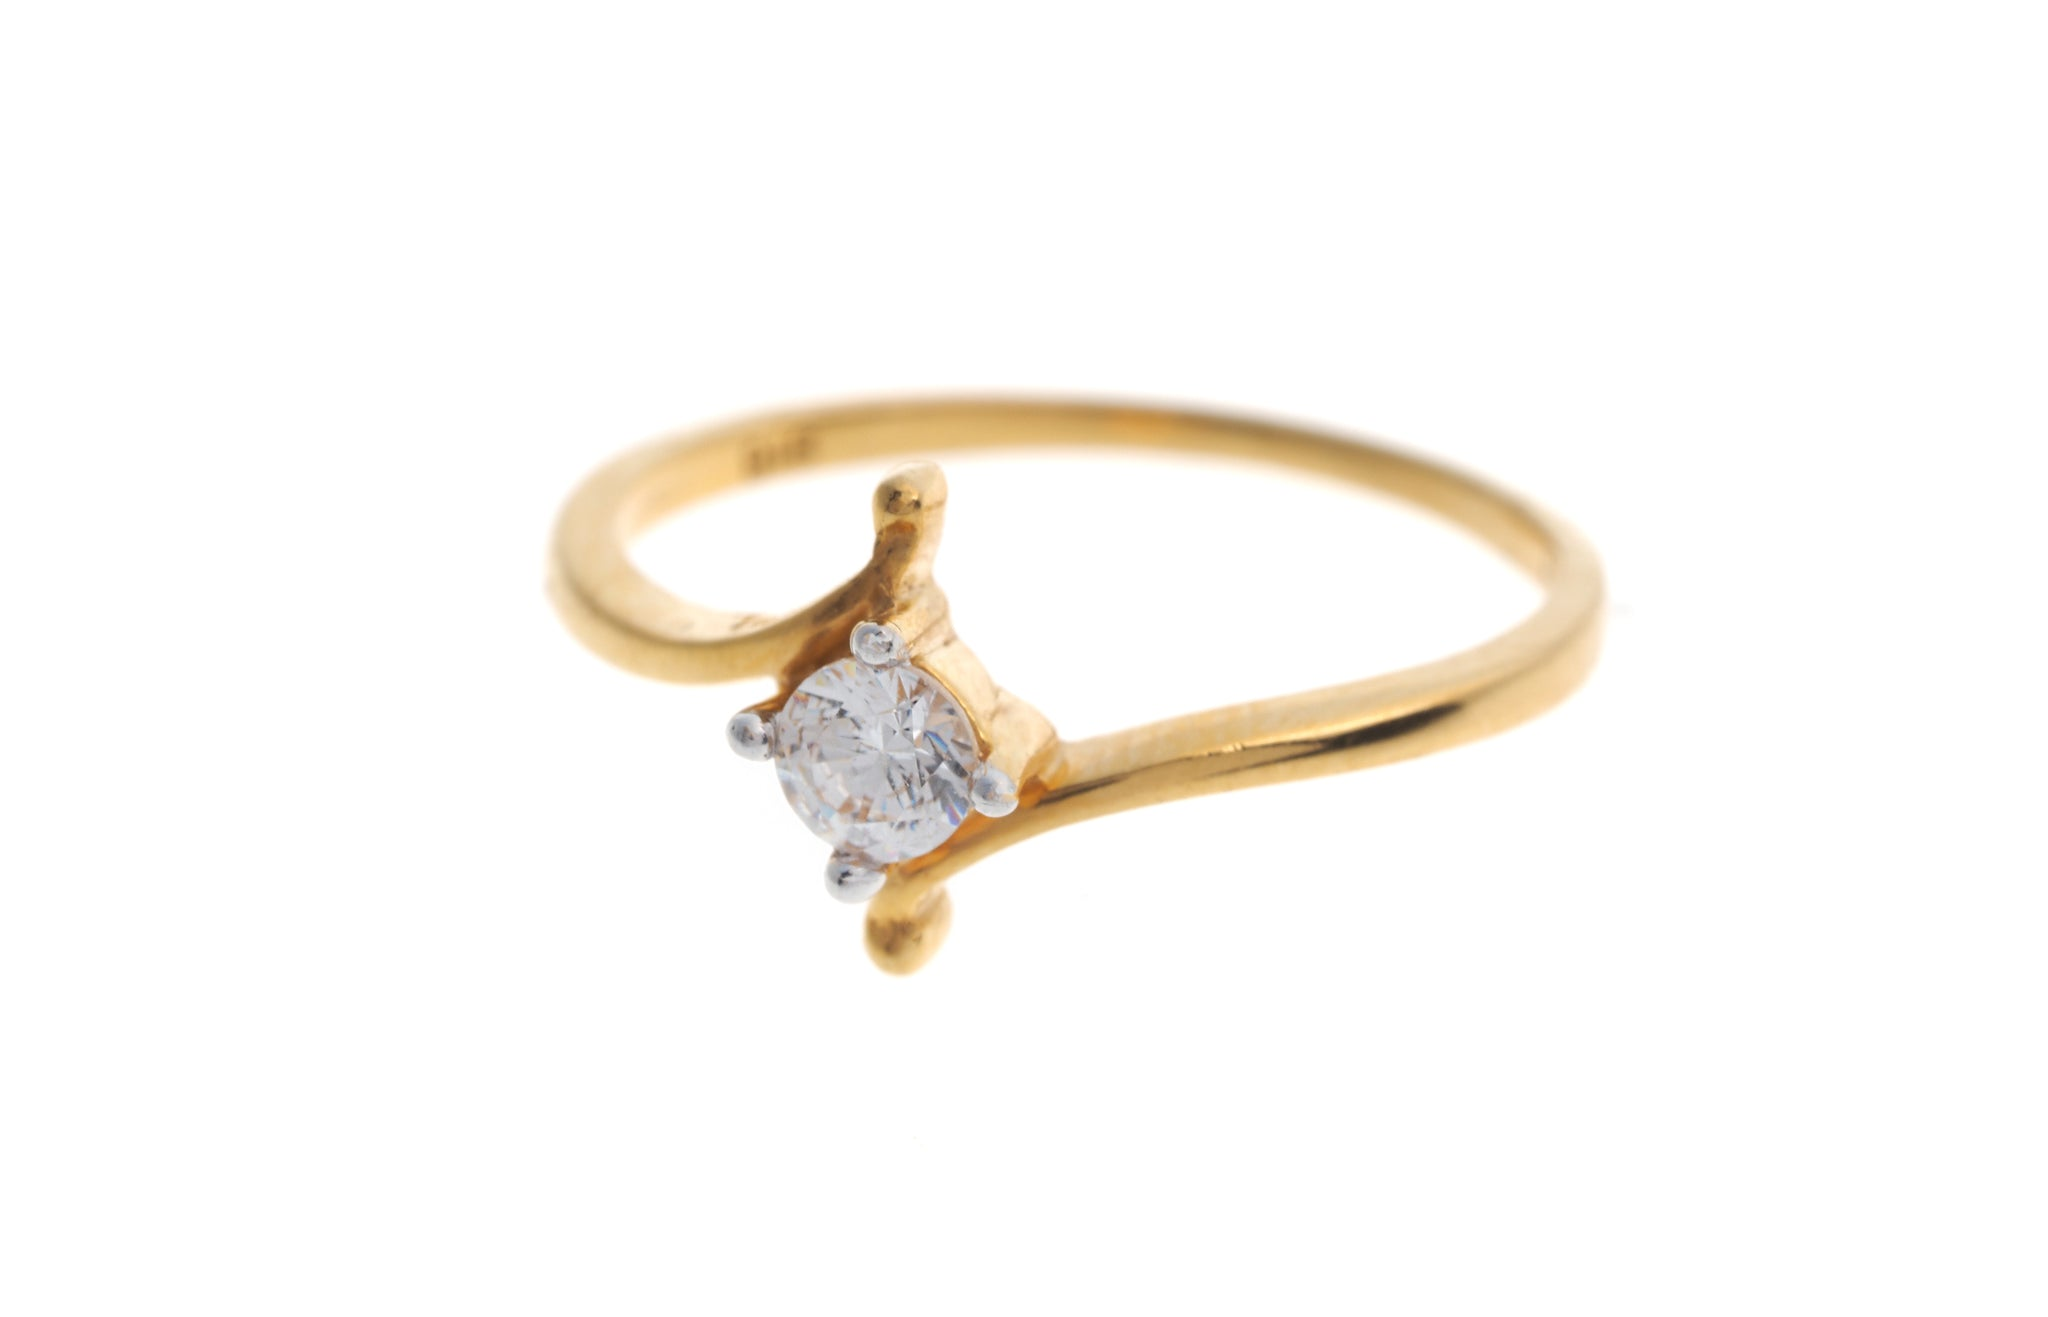 22ct Gold Cubic Zirconia Engagement Ring LR70033